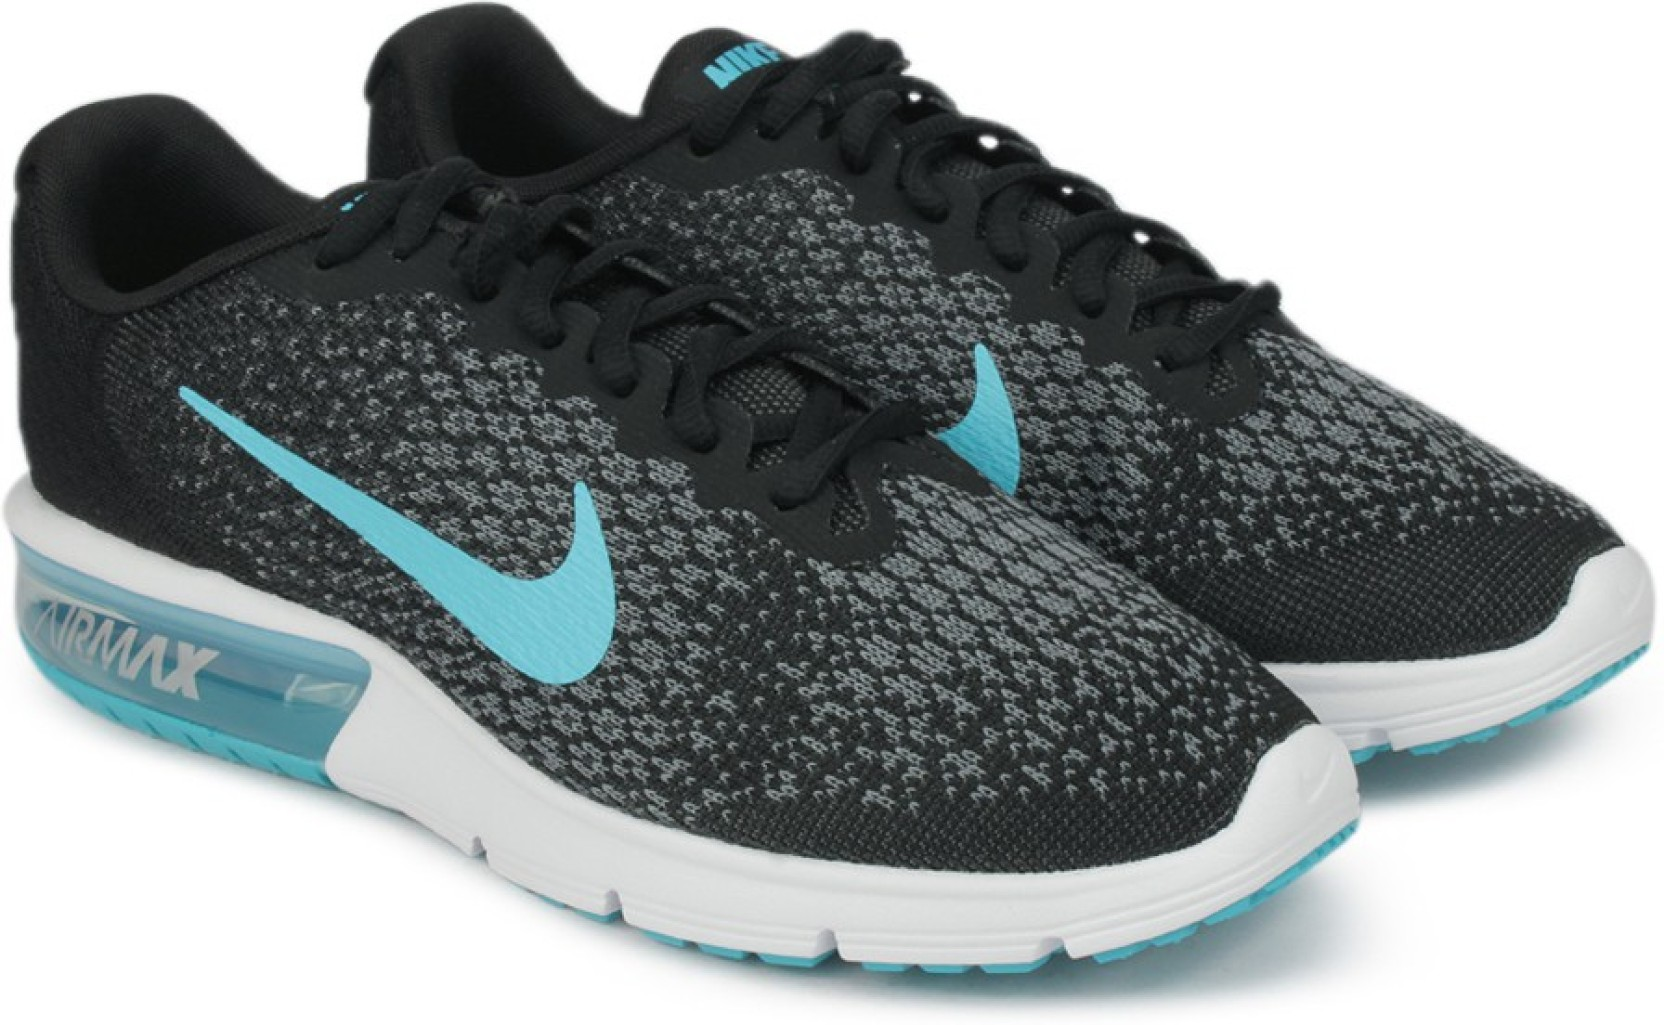 61b80ad14701f Nike AIR MAX SEQUENT 2 Running Shoes For Men - Buy BLACK CHLORINE ...